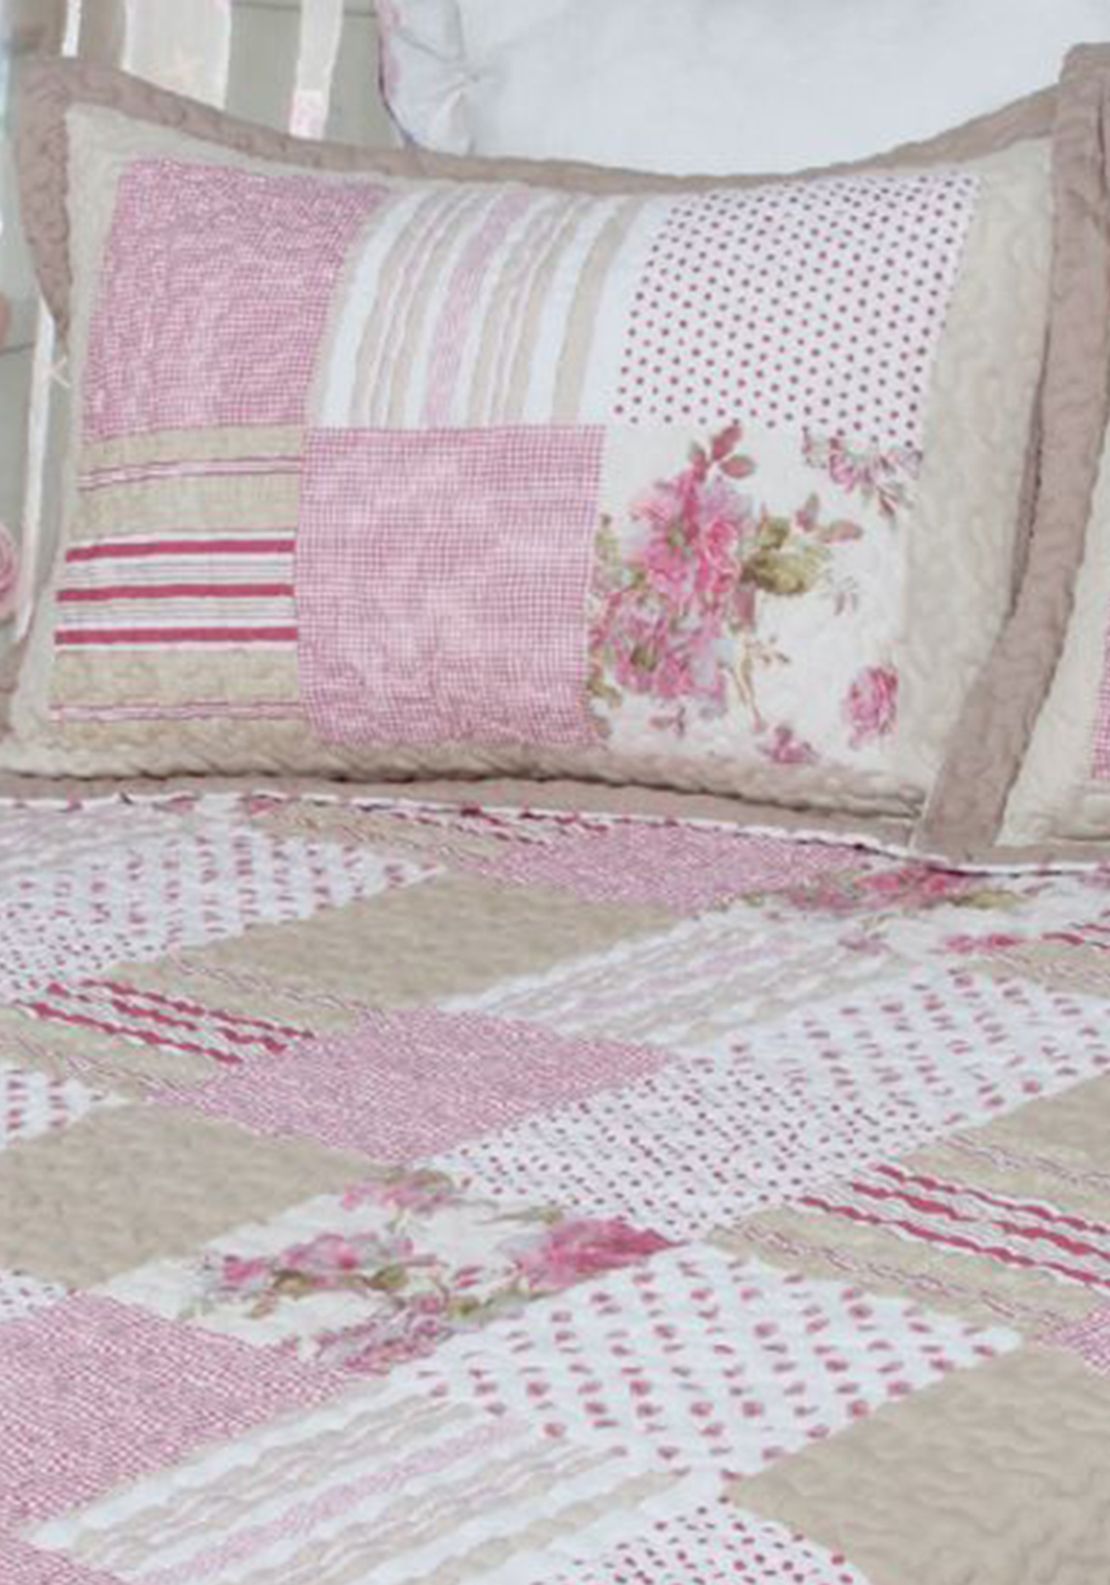 Cocoon Antique Rose Patchwork Pillow Sham, Pink Multi